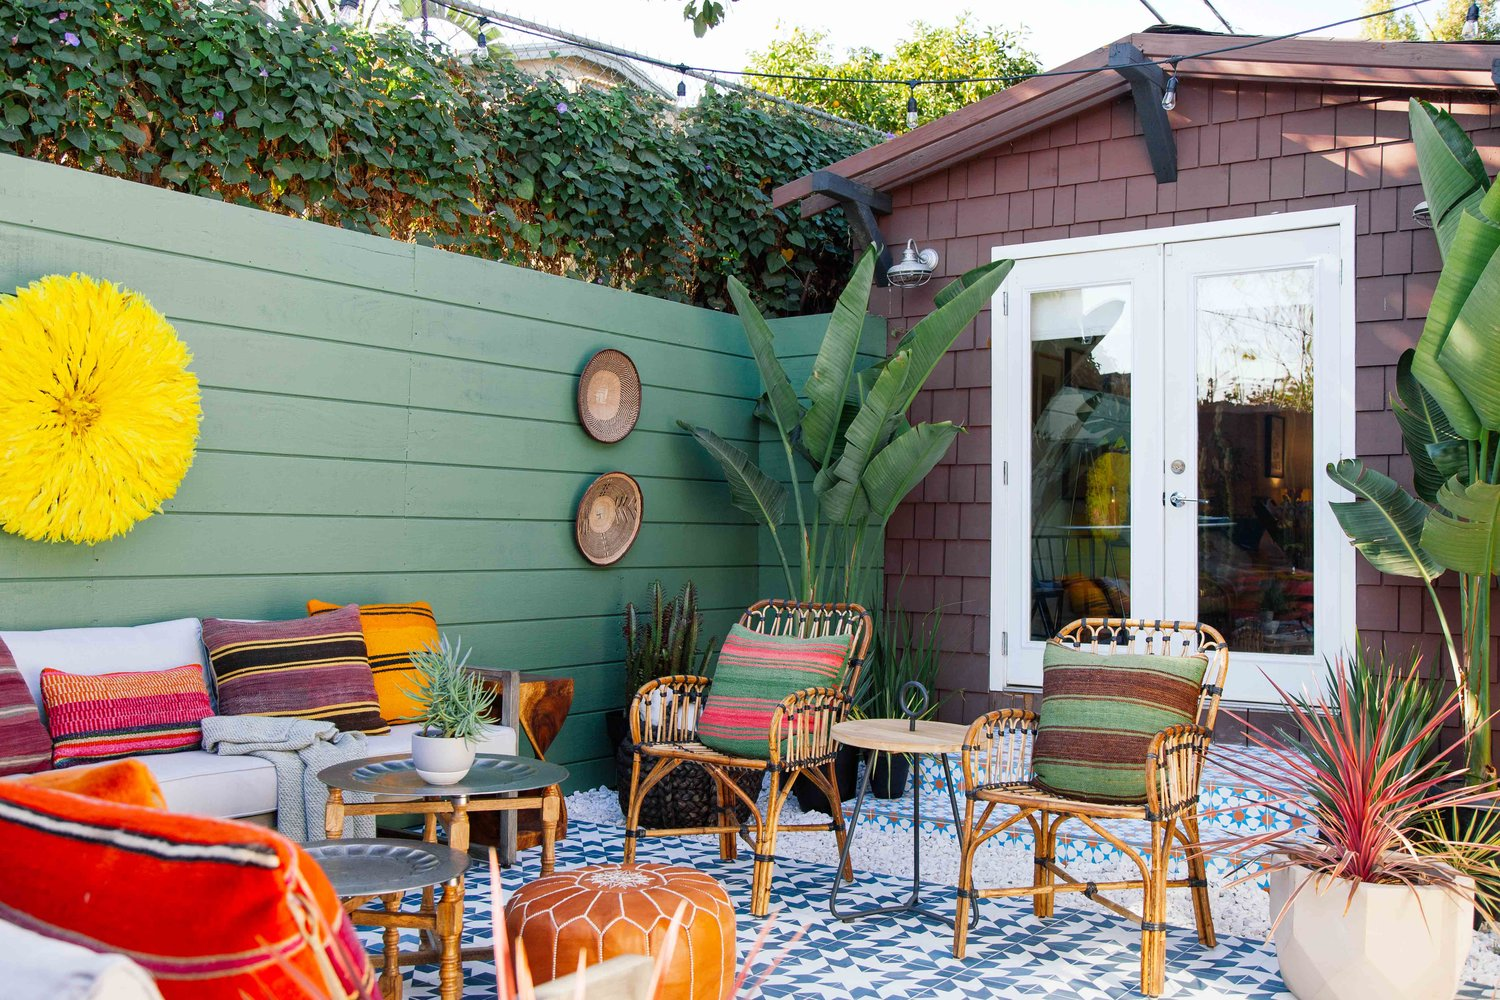 8 Genius Small Patio Ideas to Help You Design Your Dream Space | Hunker